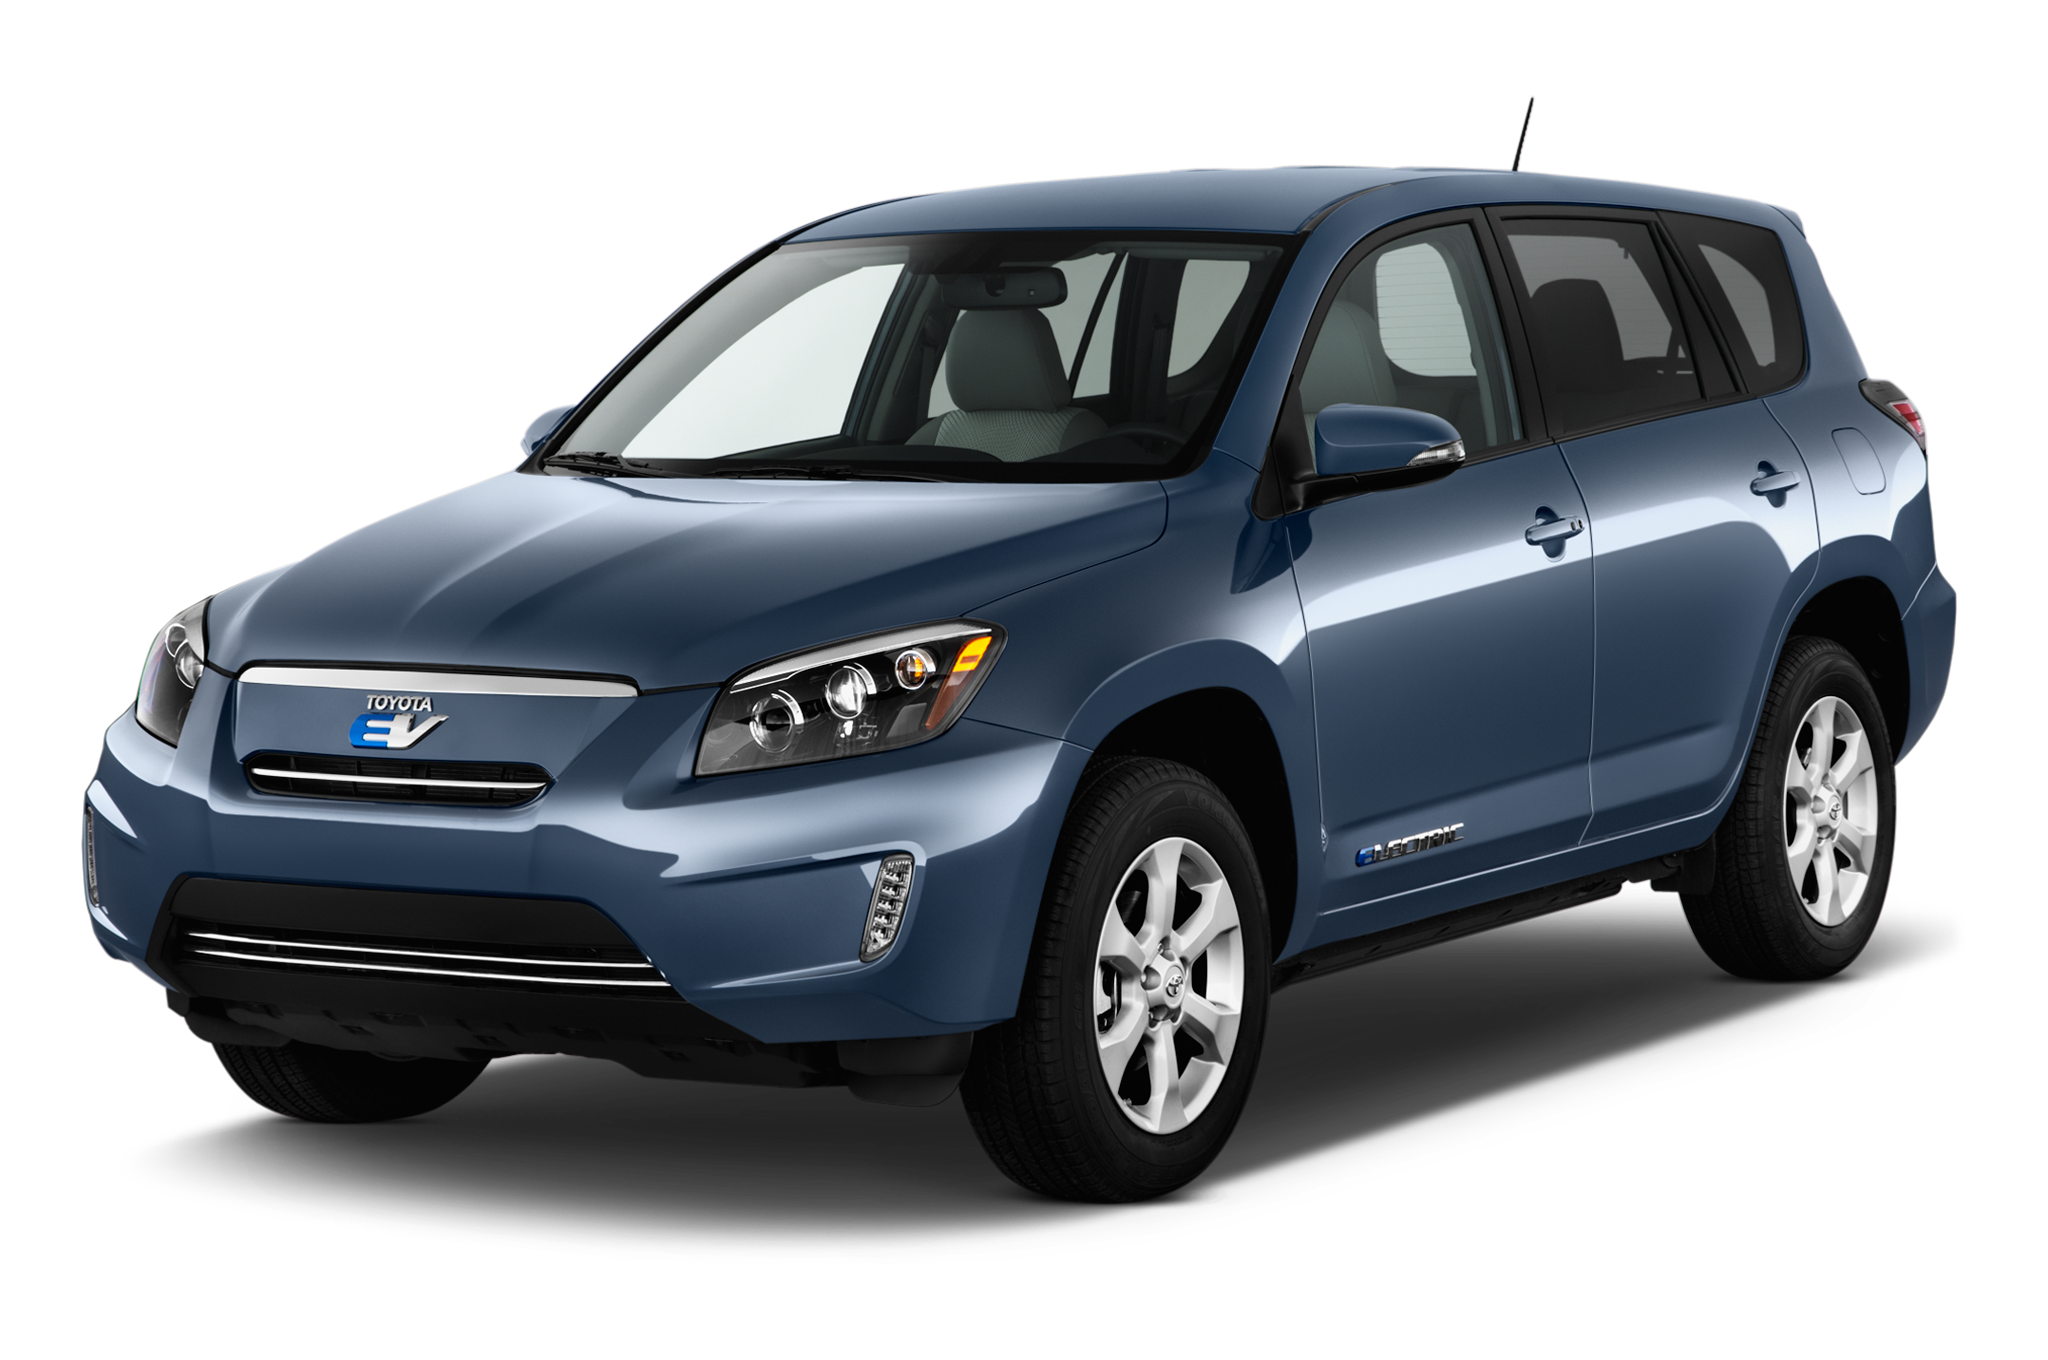 2013 toyota rav4 named iihs top safety pick. Black Bedroom Furniture Sets. Home Design Ideas